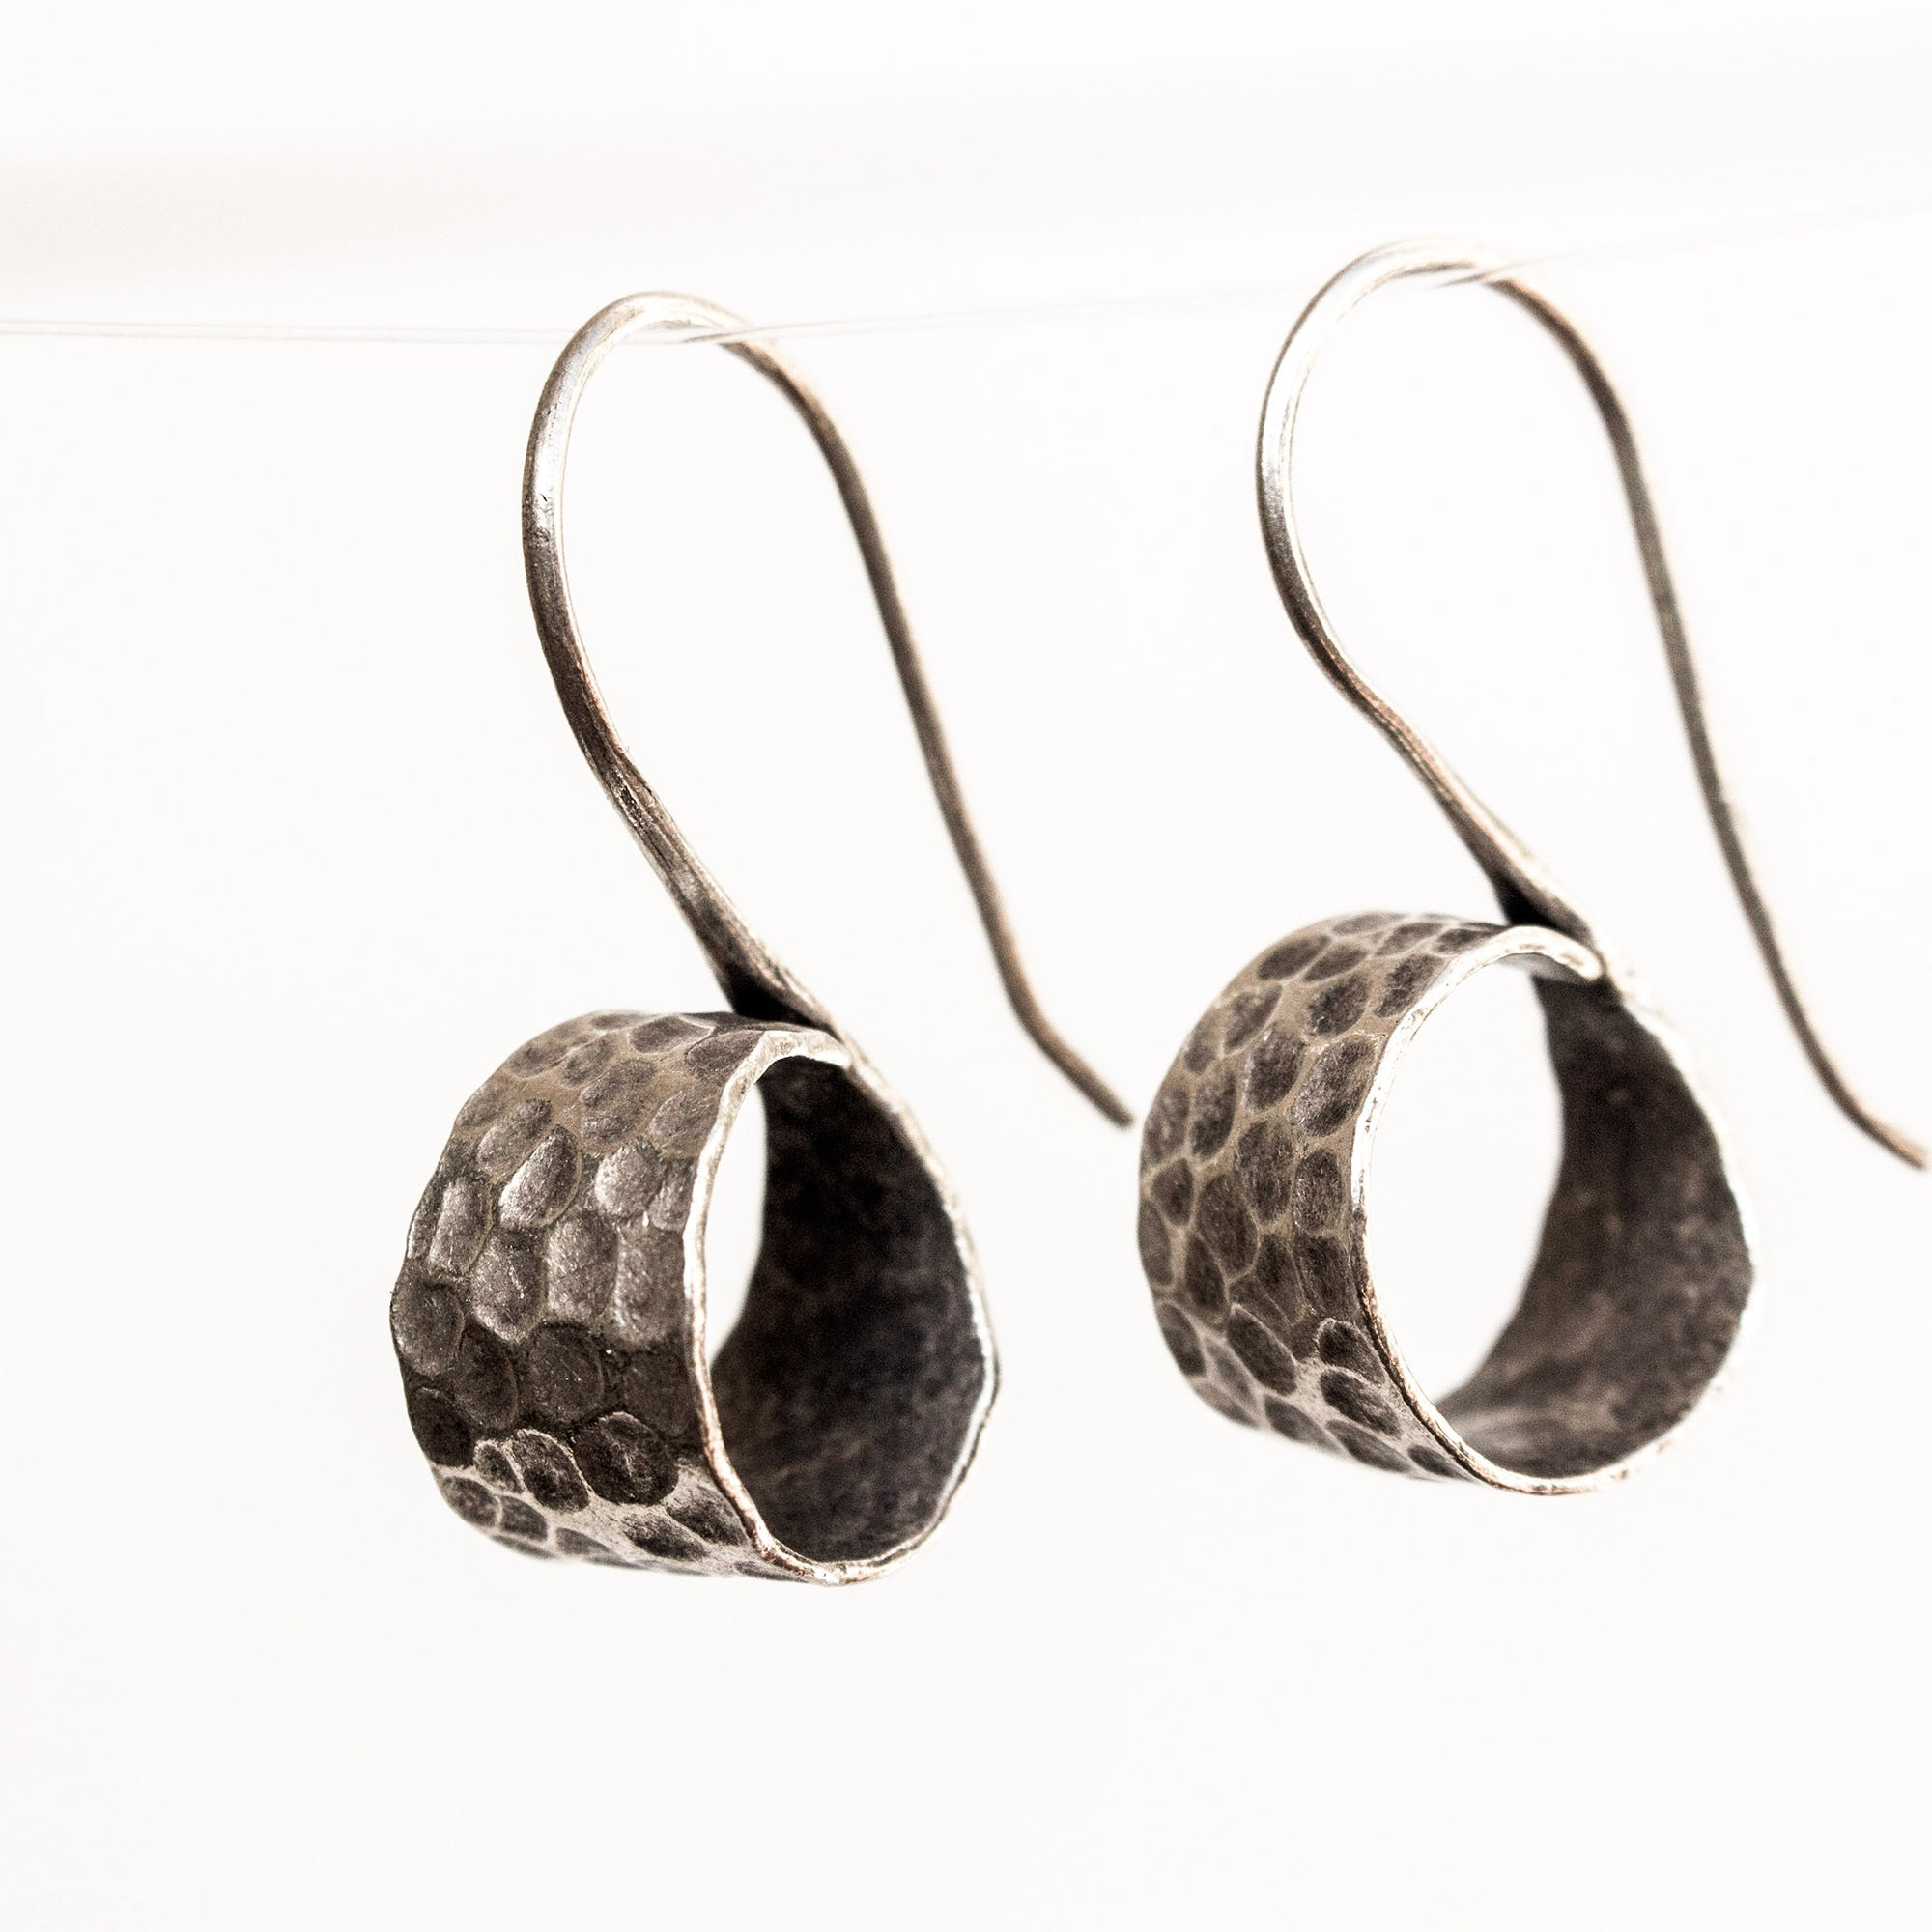 Hammered sterling silver scroll earrings